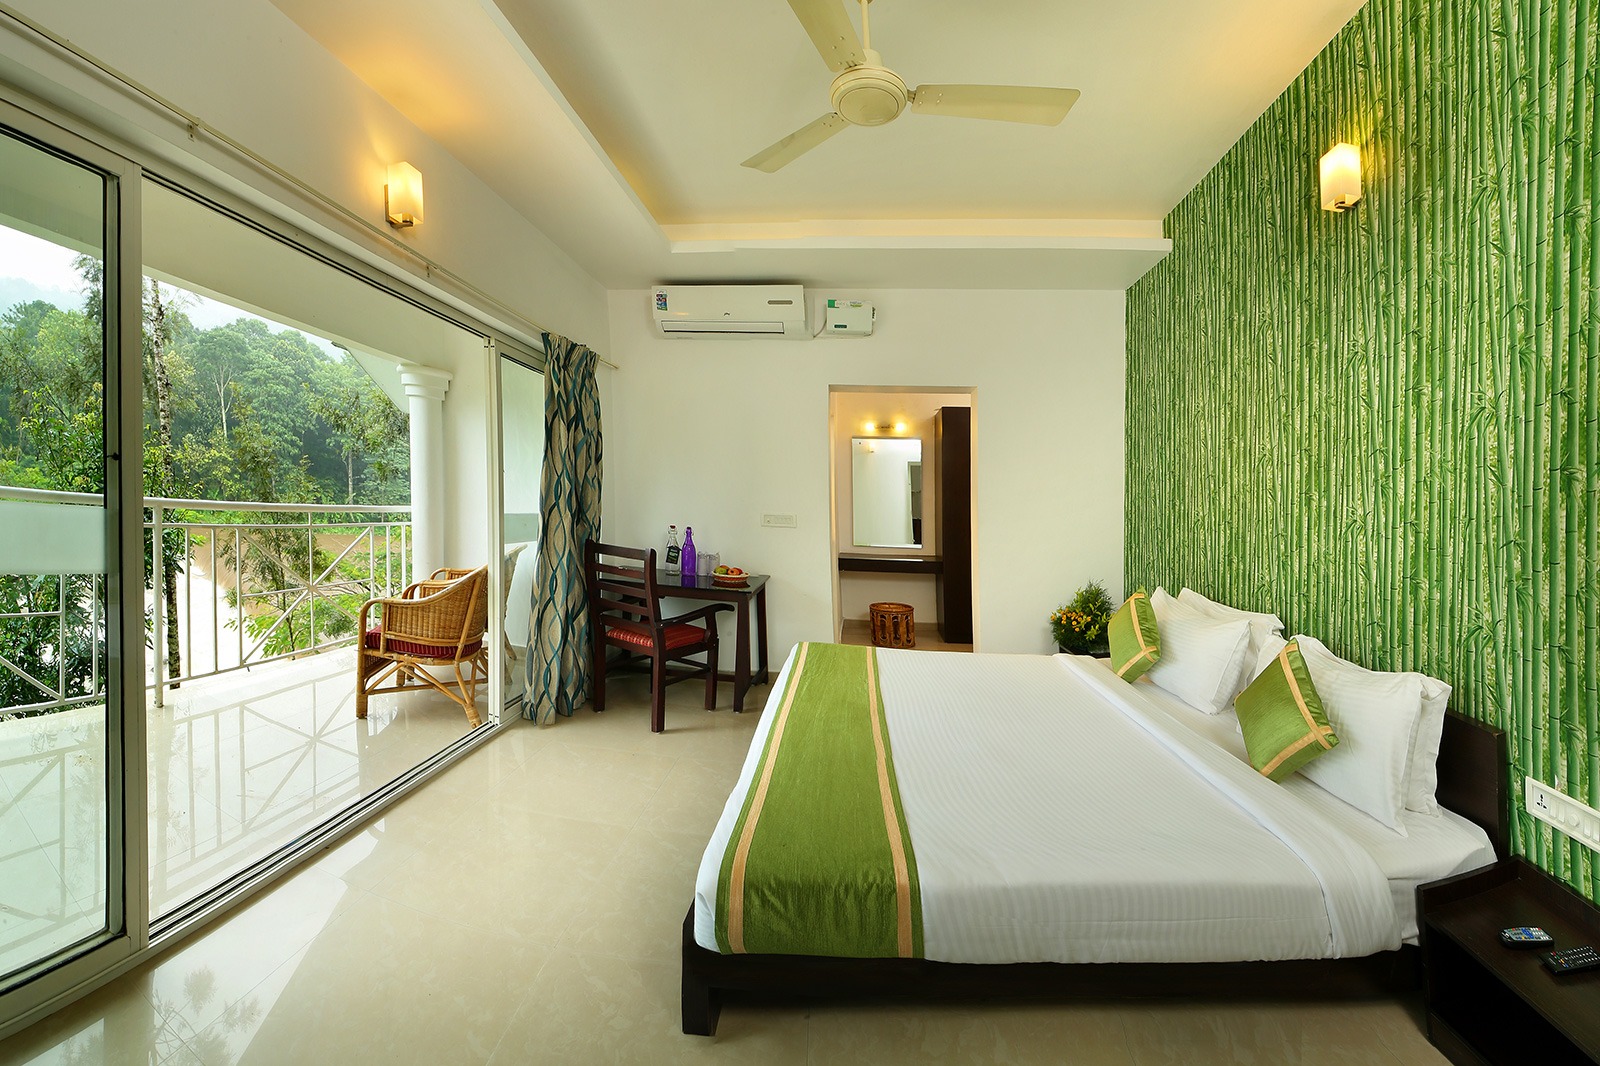 Rooms - honeymoon resorts in munnar